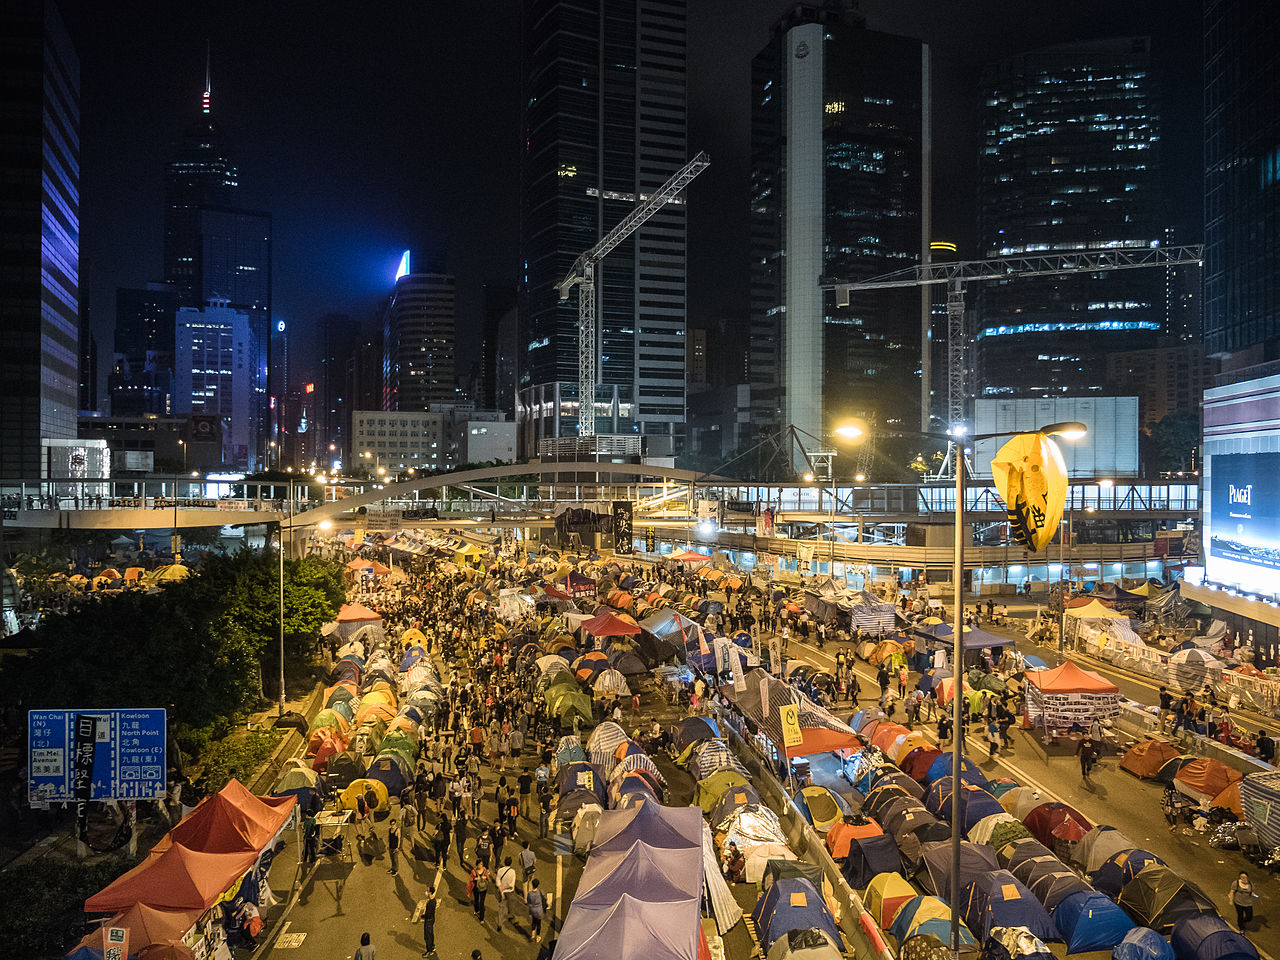 hong kong revolution essay In this text we pose an essential question that focuses our inquiry: did the industrial revolution improve life  (hong kong, singapore, taiwan, south korea) and .